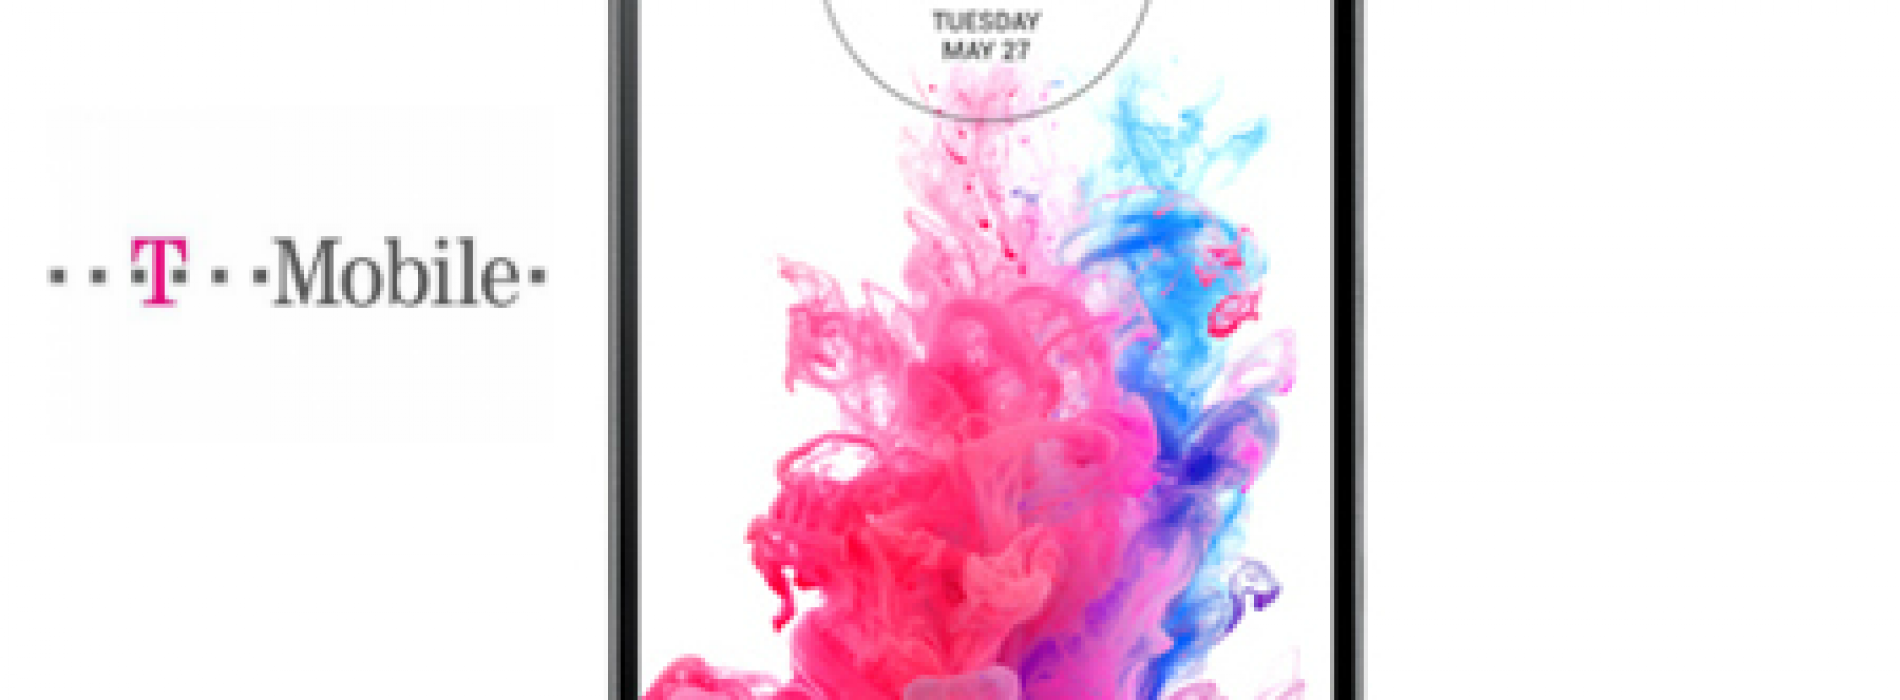 T-Mobile beats Verizon to punch with LG G3